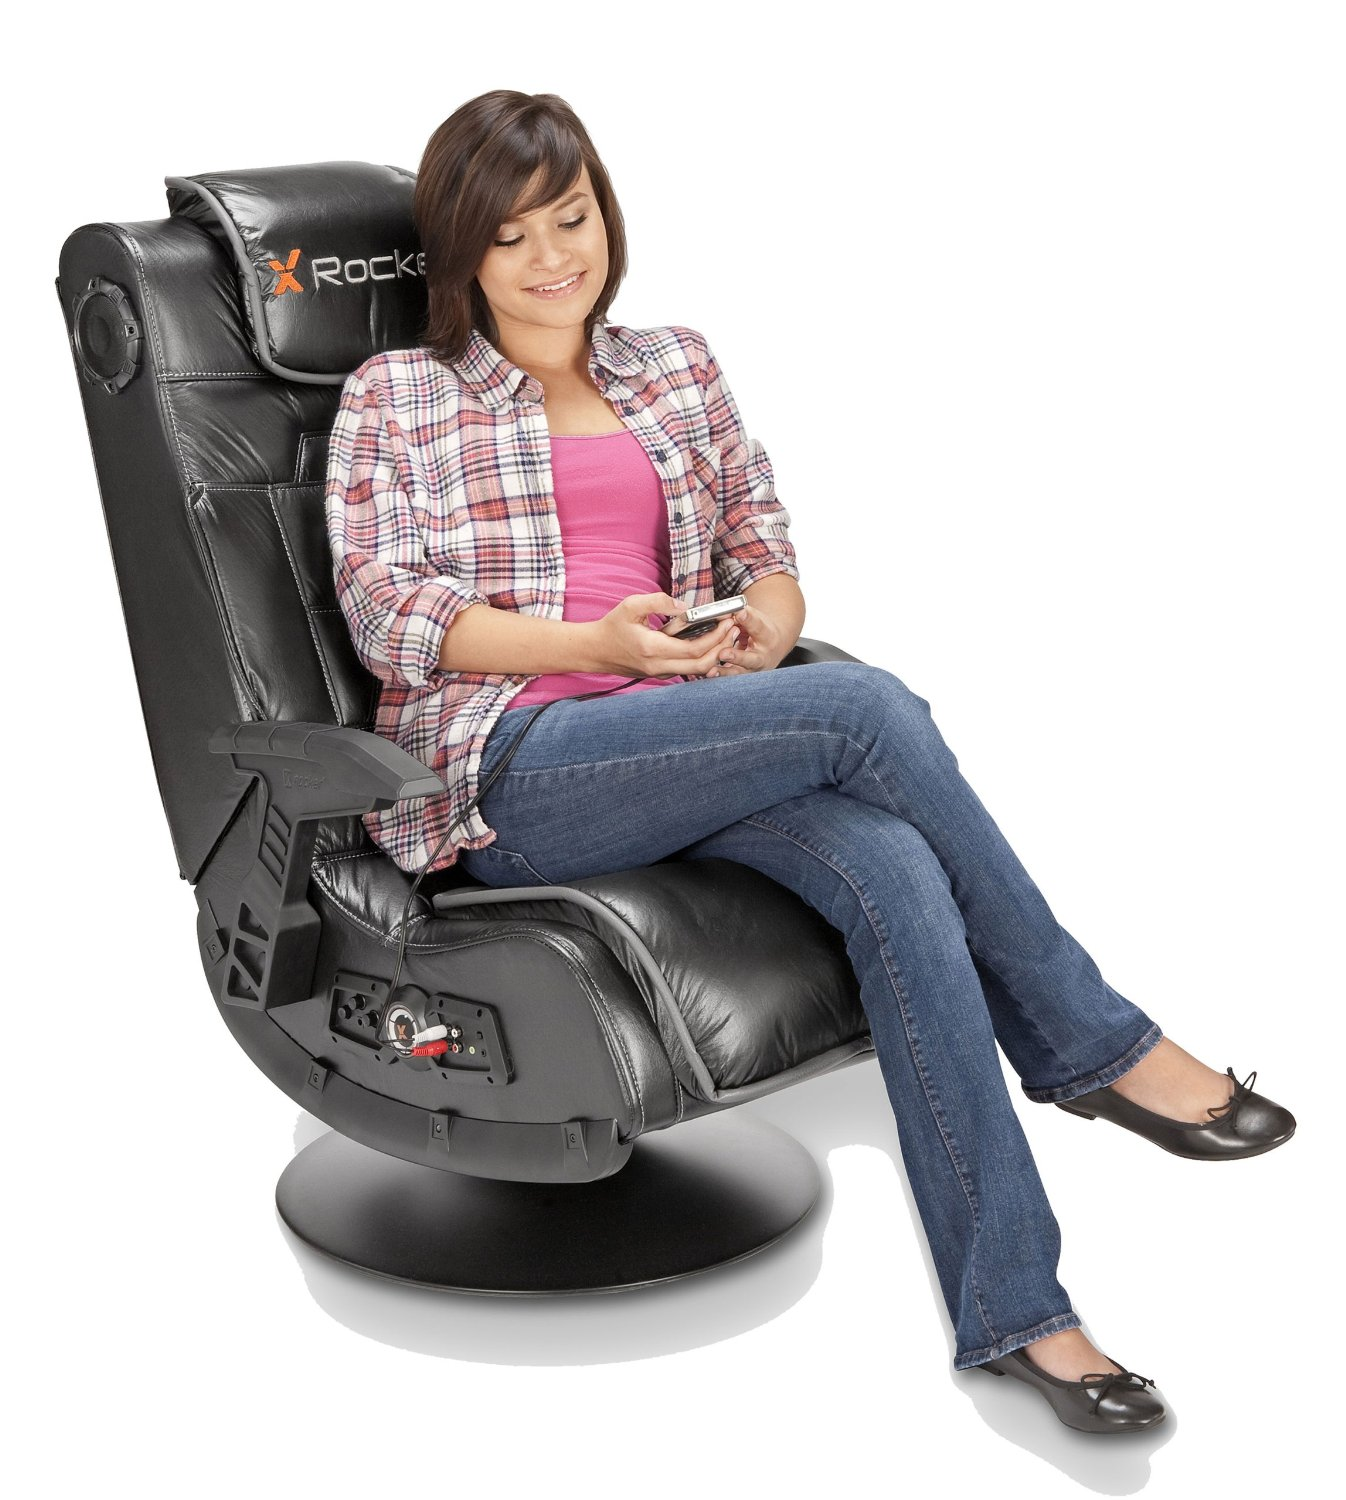 sc 1 st  Gadgets & Wireless Video Gaming Chair - Not Any Gadgets